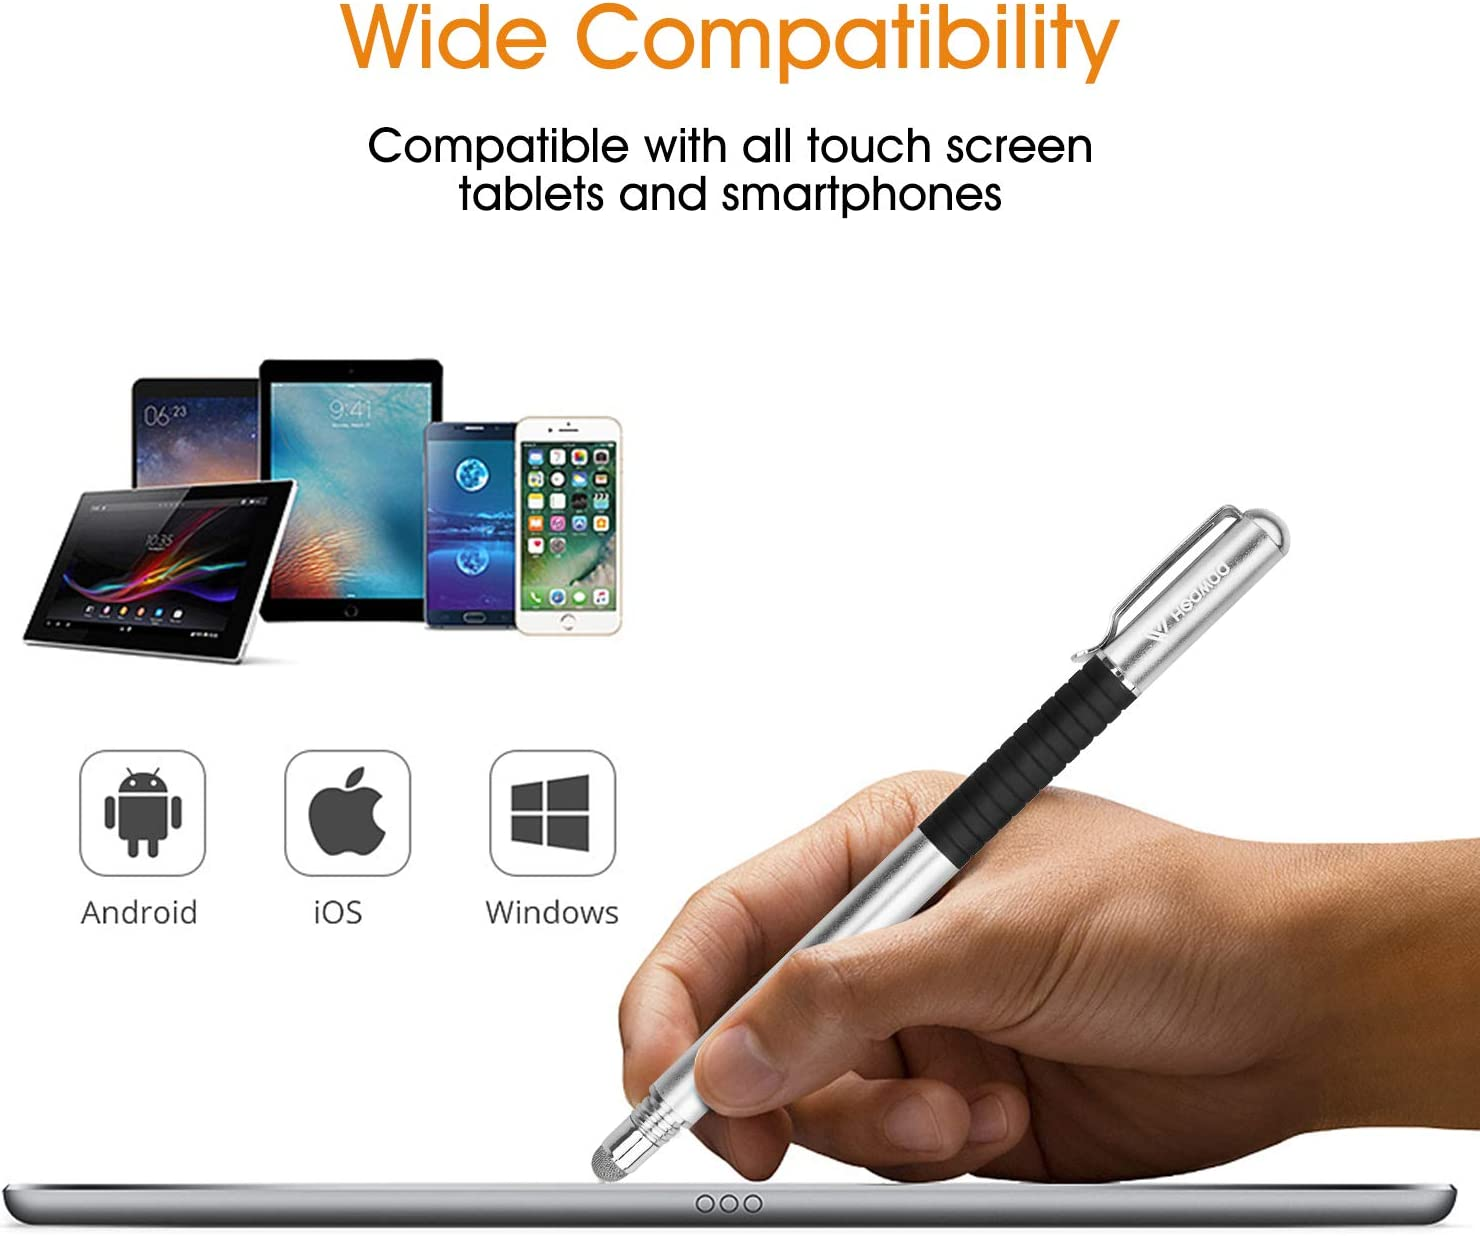 Galaxy iPad Mini iPhone Tab HEAWAA Capacitive Stylus Pen 2-in-1 Styli Touch Screen Pen with 3 Replacement Tips for Smartphones Laptop 1-Pack, Silver Tablet Pro Note